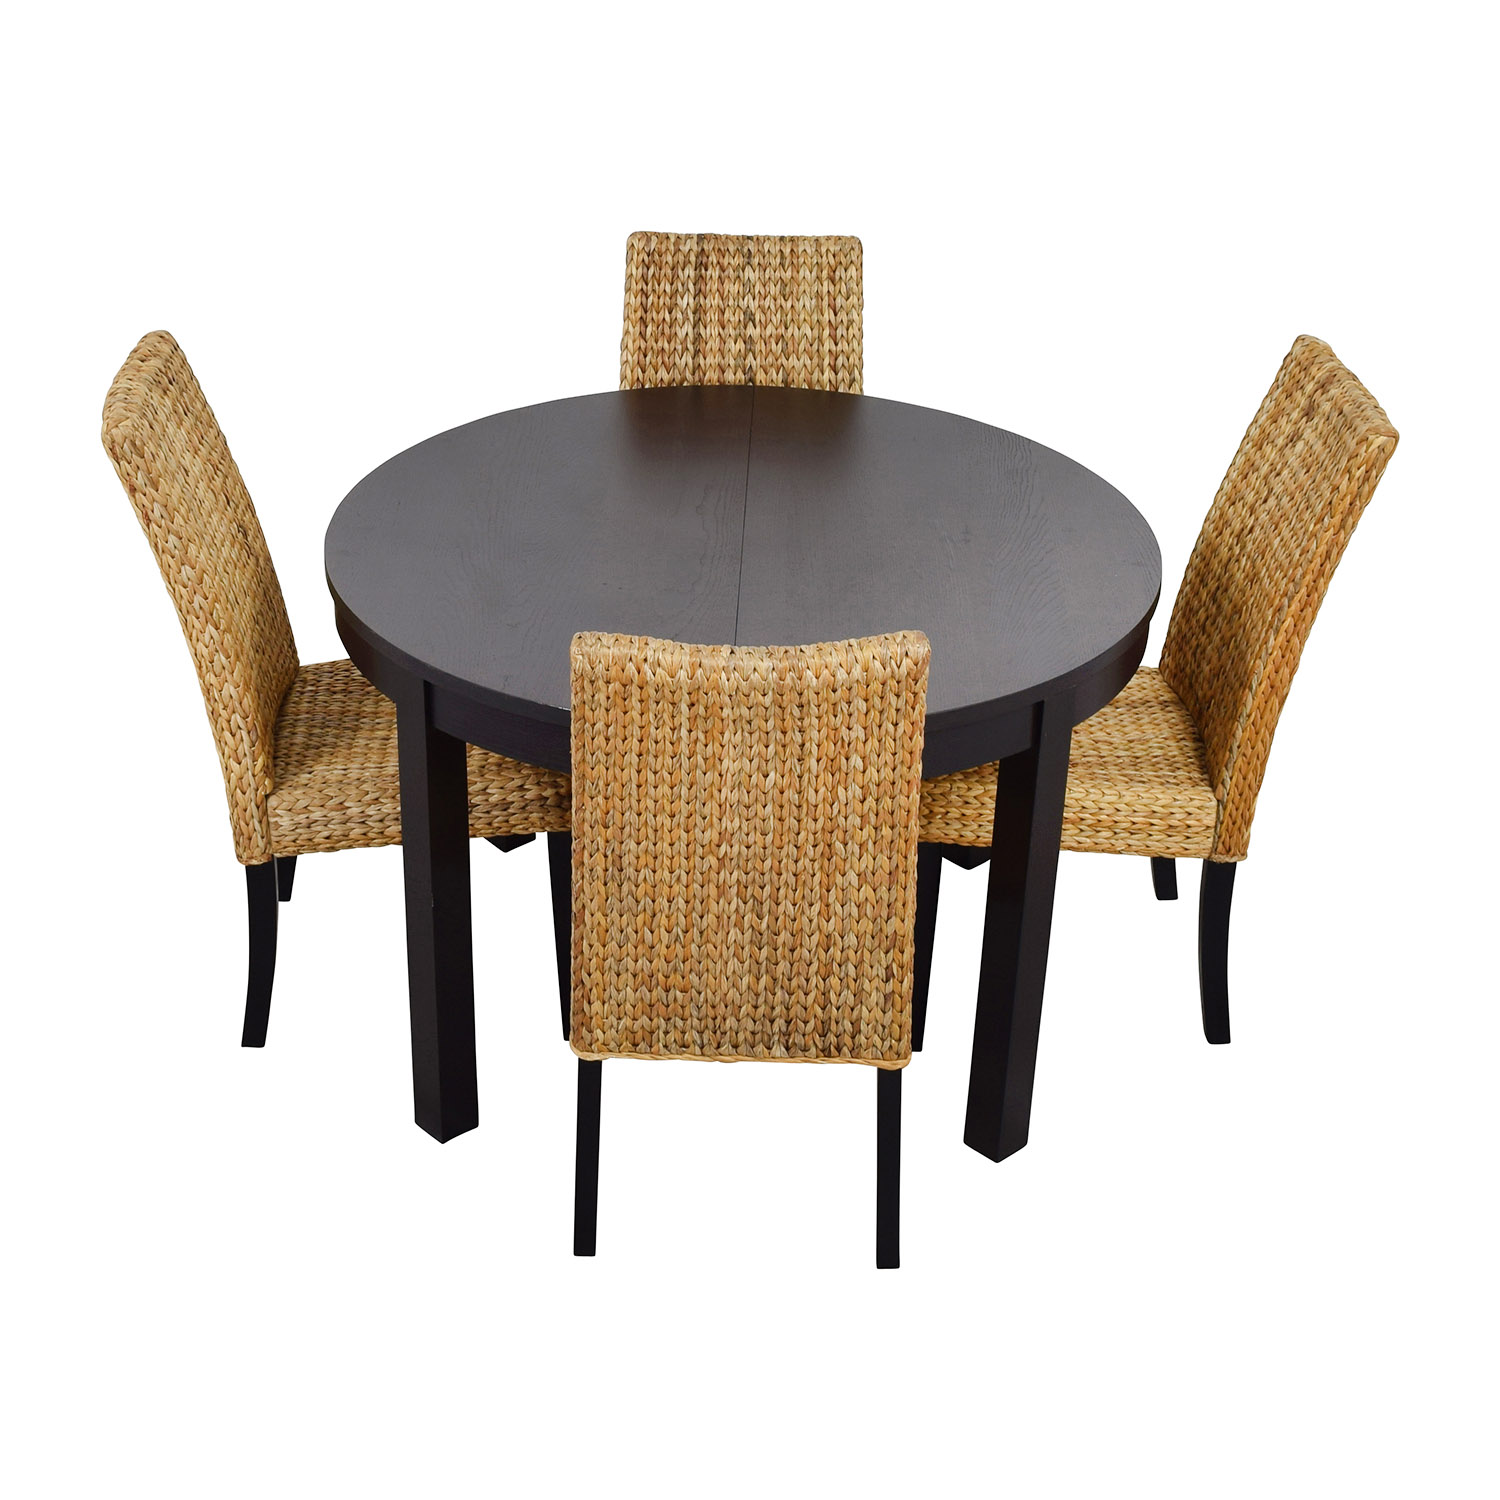 66 off macy 39 s ikea round black dining table set with for Black dining table